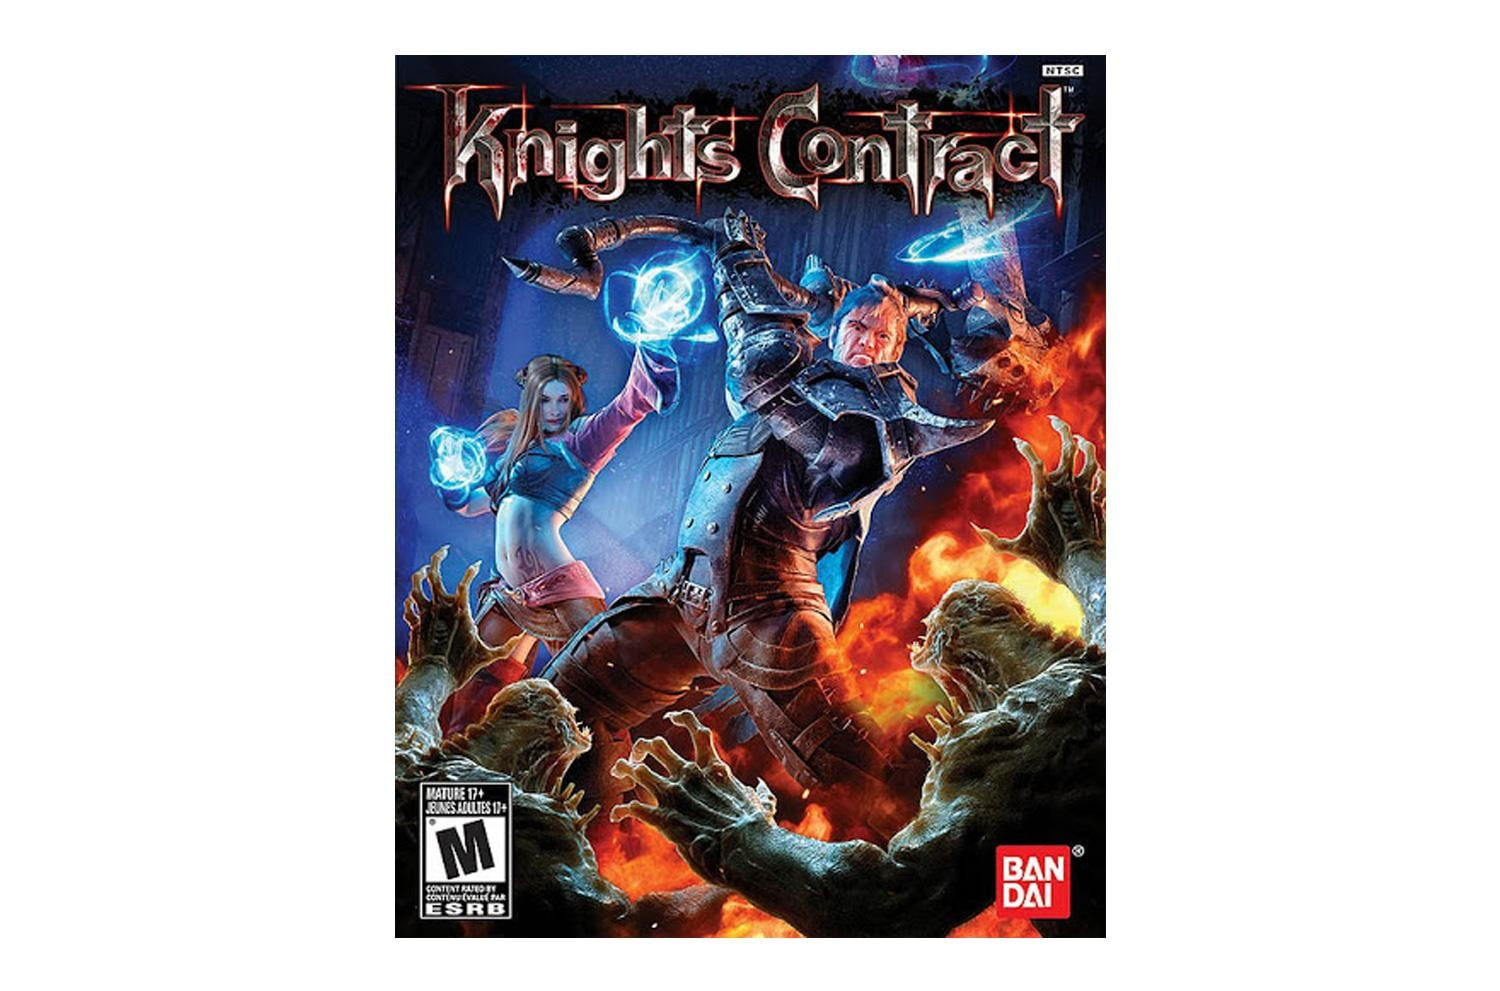 Knights-Contract-cover-art